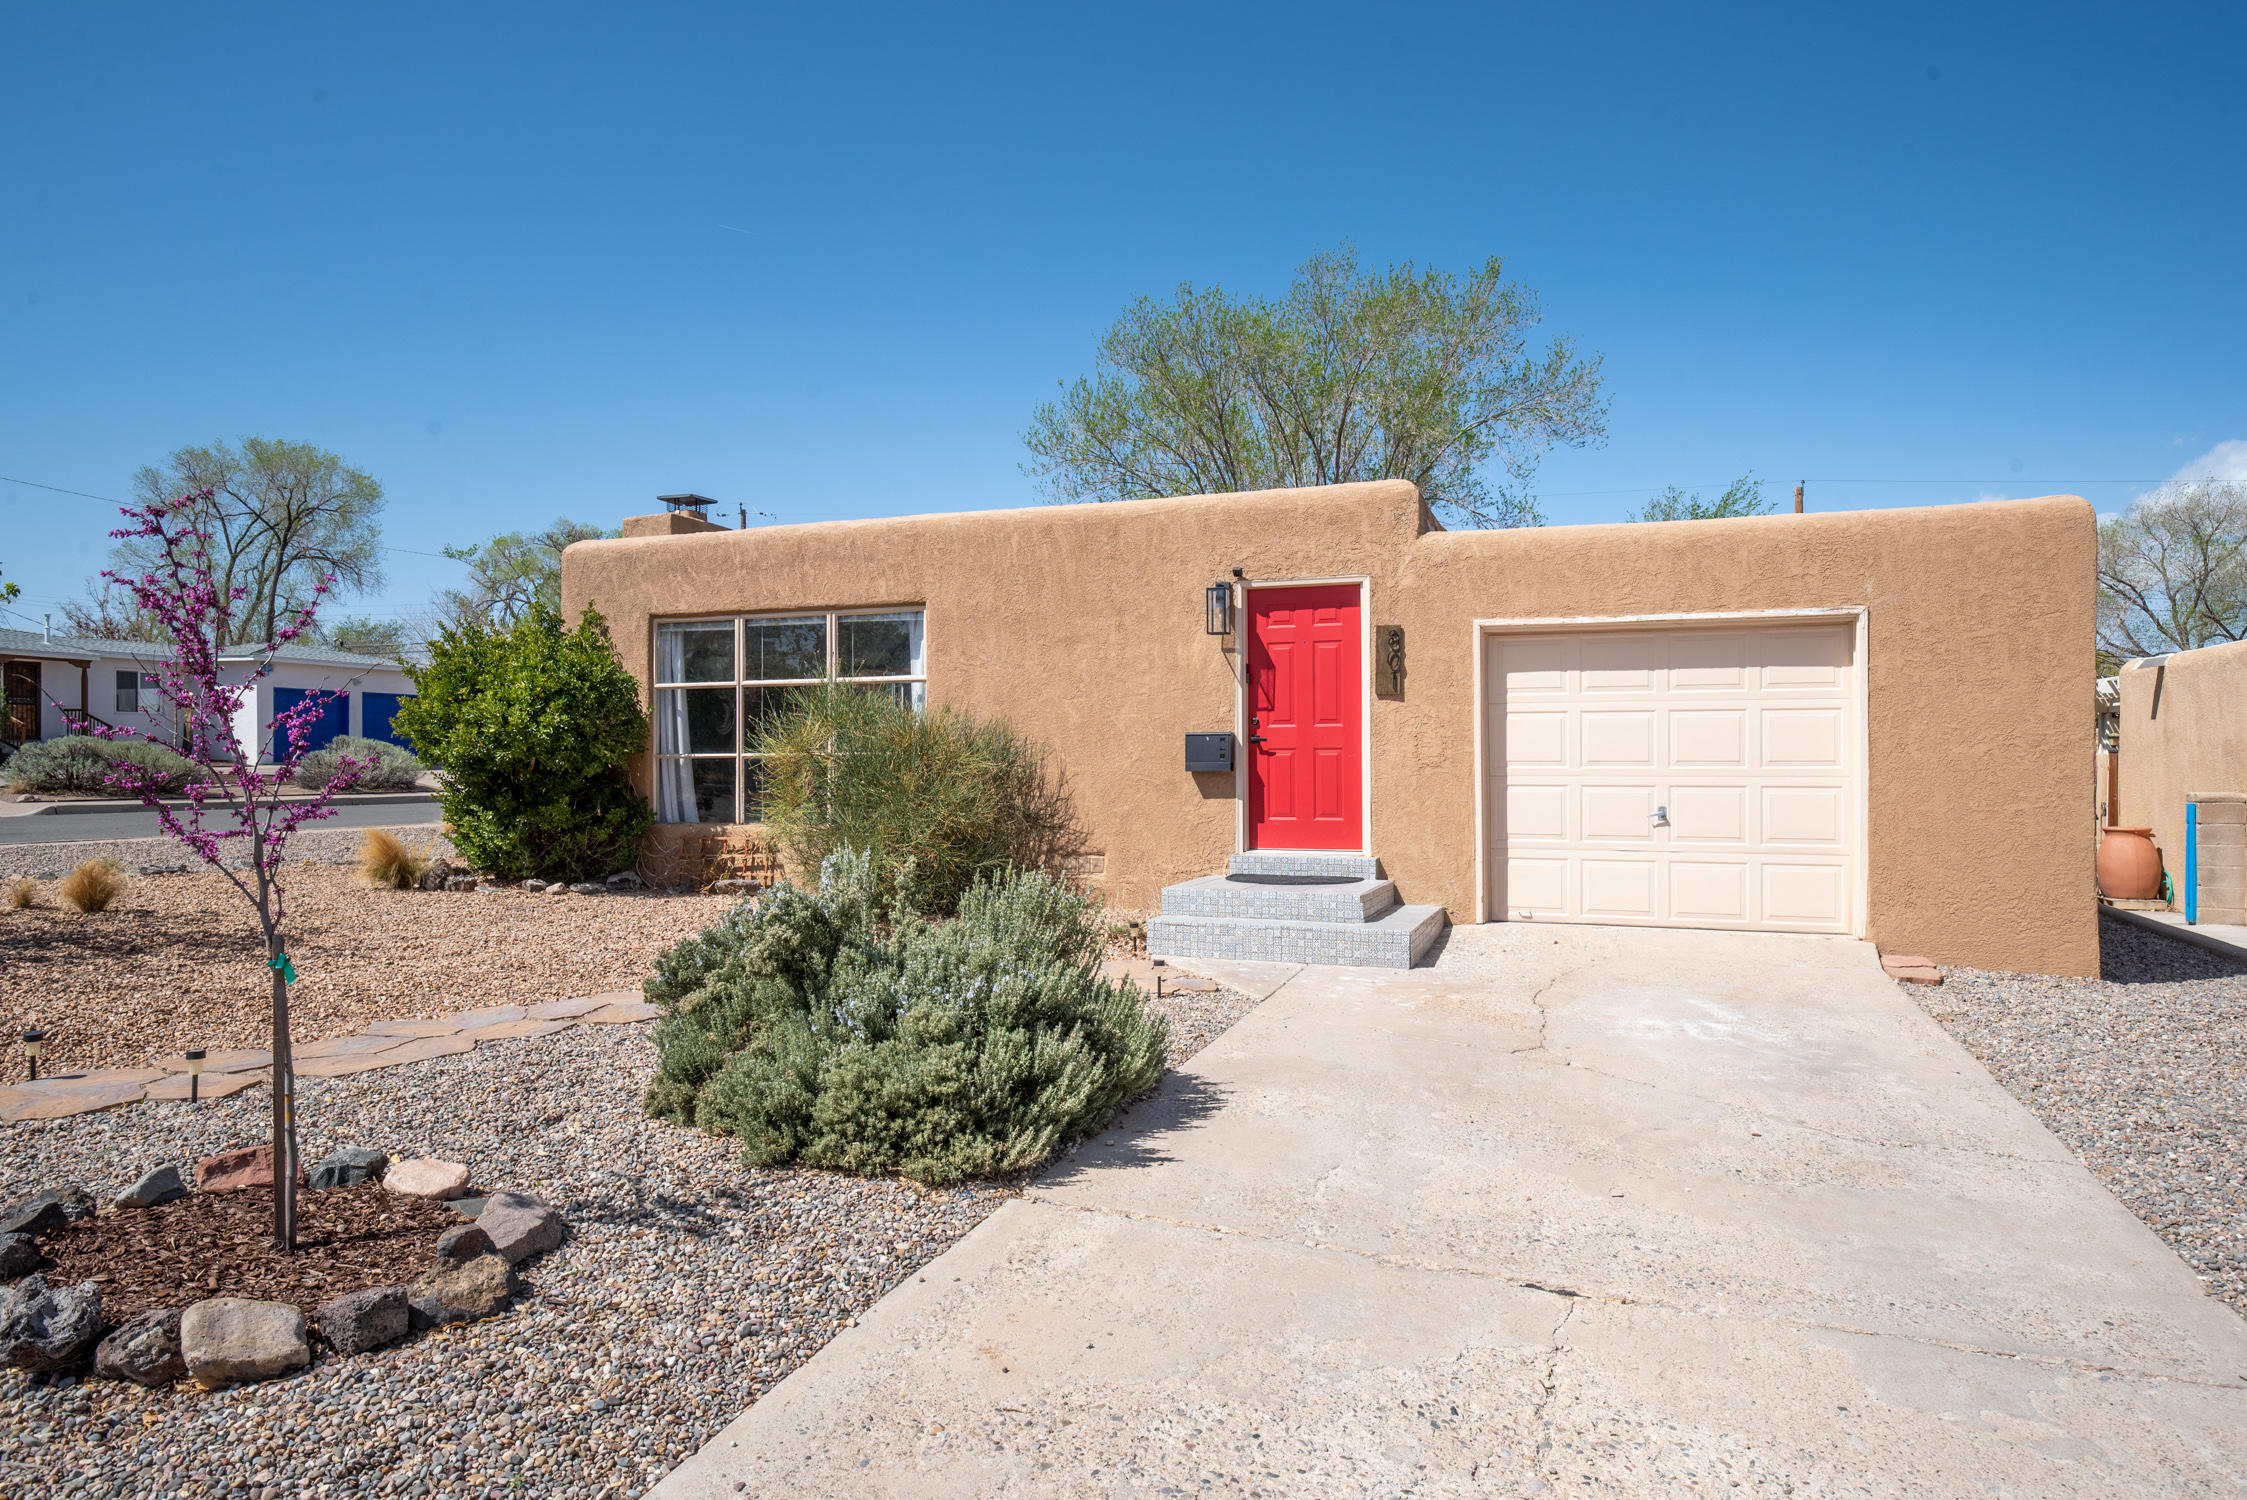 UNM!! CORNER LOT!!  HUGE BACKYARD!  Beautifully updated 3BDR/2BA/1CG home!!  Beautiful wood flooring!  Open floor plan features a great room/dining room with wood fireplace & large picture window showcasing mountain views!  Updated kitchen with tile flooring, track lighting, gas range, SS built-in microwave, refrigerator & dishwasher!  Washer & dryer stay!  Updated full bath and master bath!  Updated water heater!  Finished 1CG makes a perfect exercise room!  Incredible outdoor living space featuring a pergola covered patio & open patio, raised garden beds, trees & shrubs, wood bar/table, perfect for Summer BBQs, outdoor dining & gatherings, lots of room to entertain family and friends!  Excellent location close to UNM, Nob Hill, Uptown, Altura Park, shopping & restaurants!